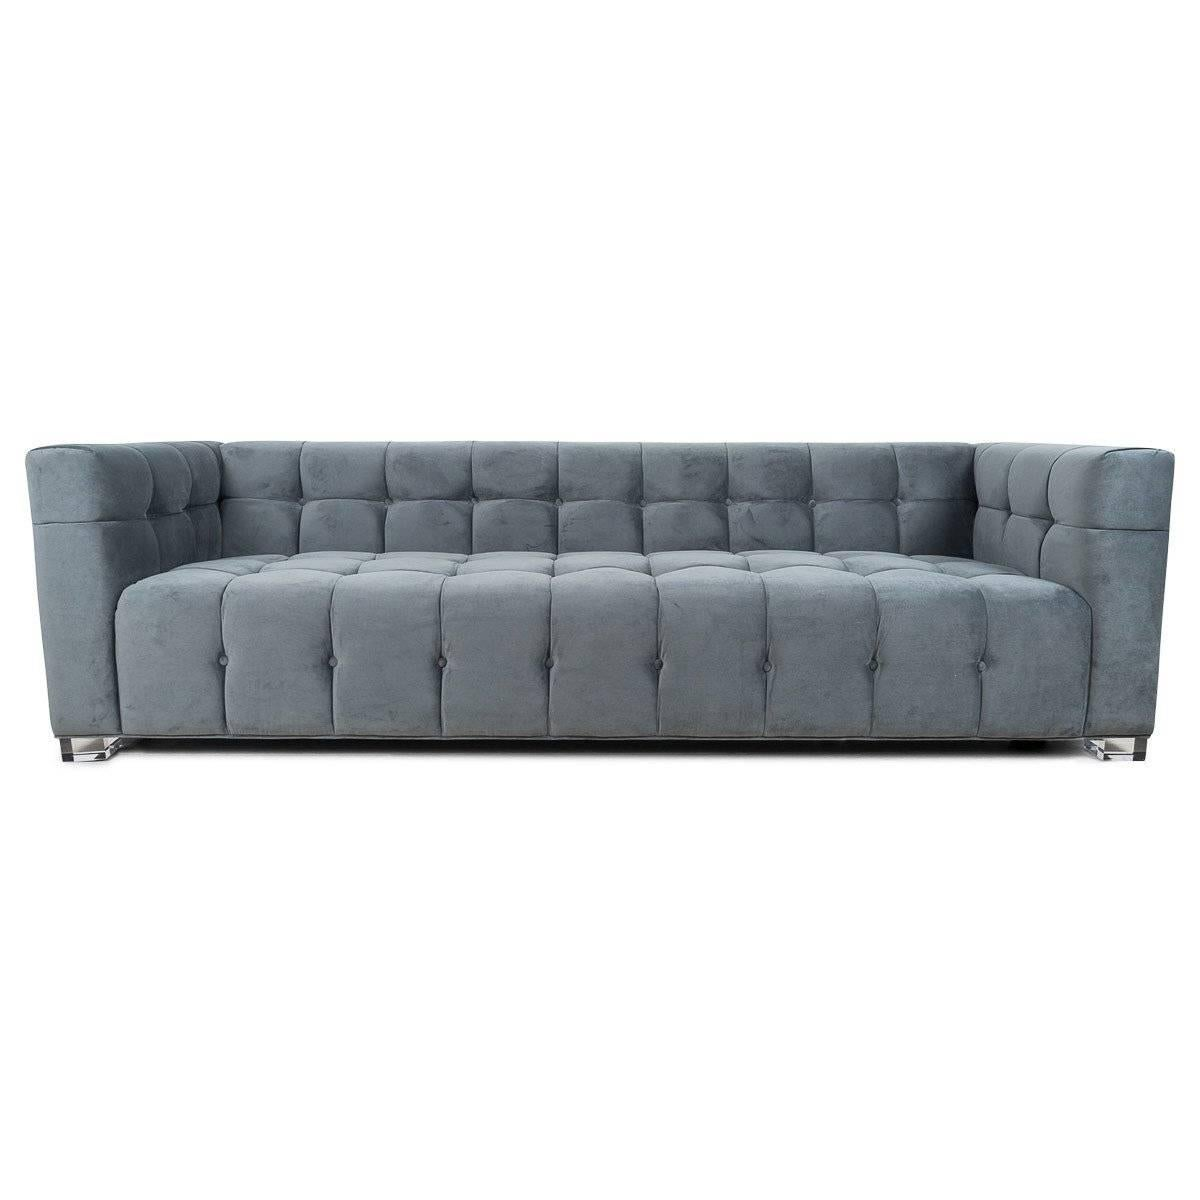 Beau Mid Century Modern Modern Style Sofa In Charcoal Velvet With Biscuit  Tufting And Lucite Block